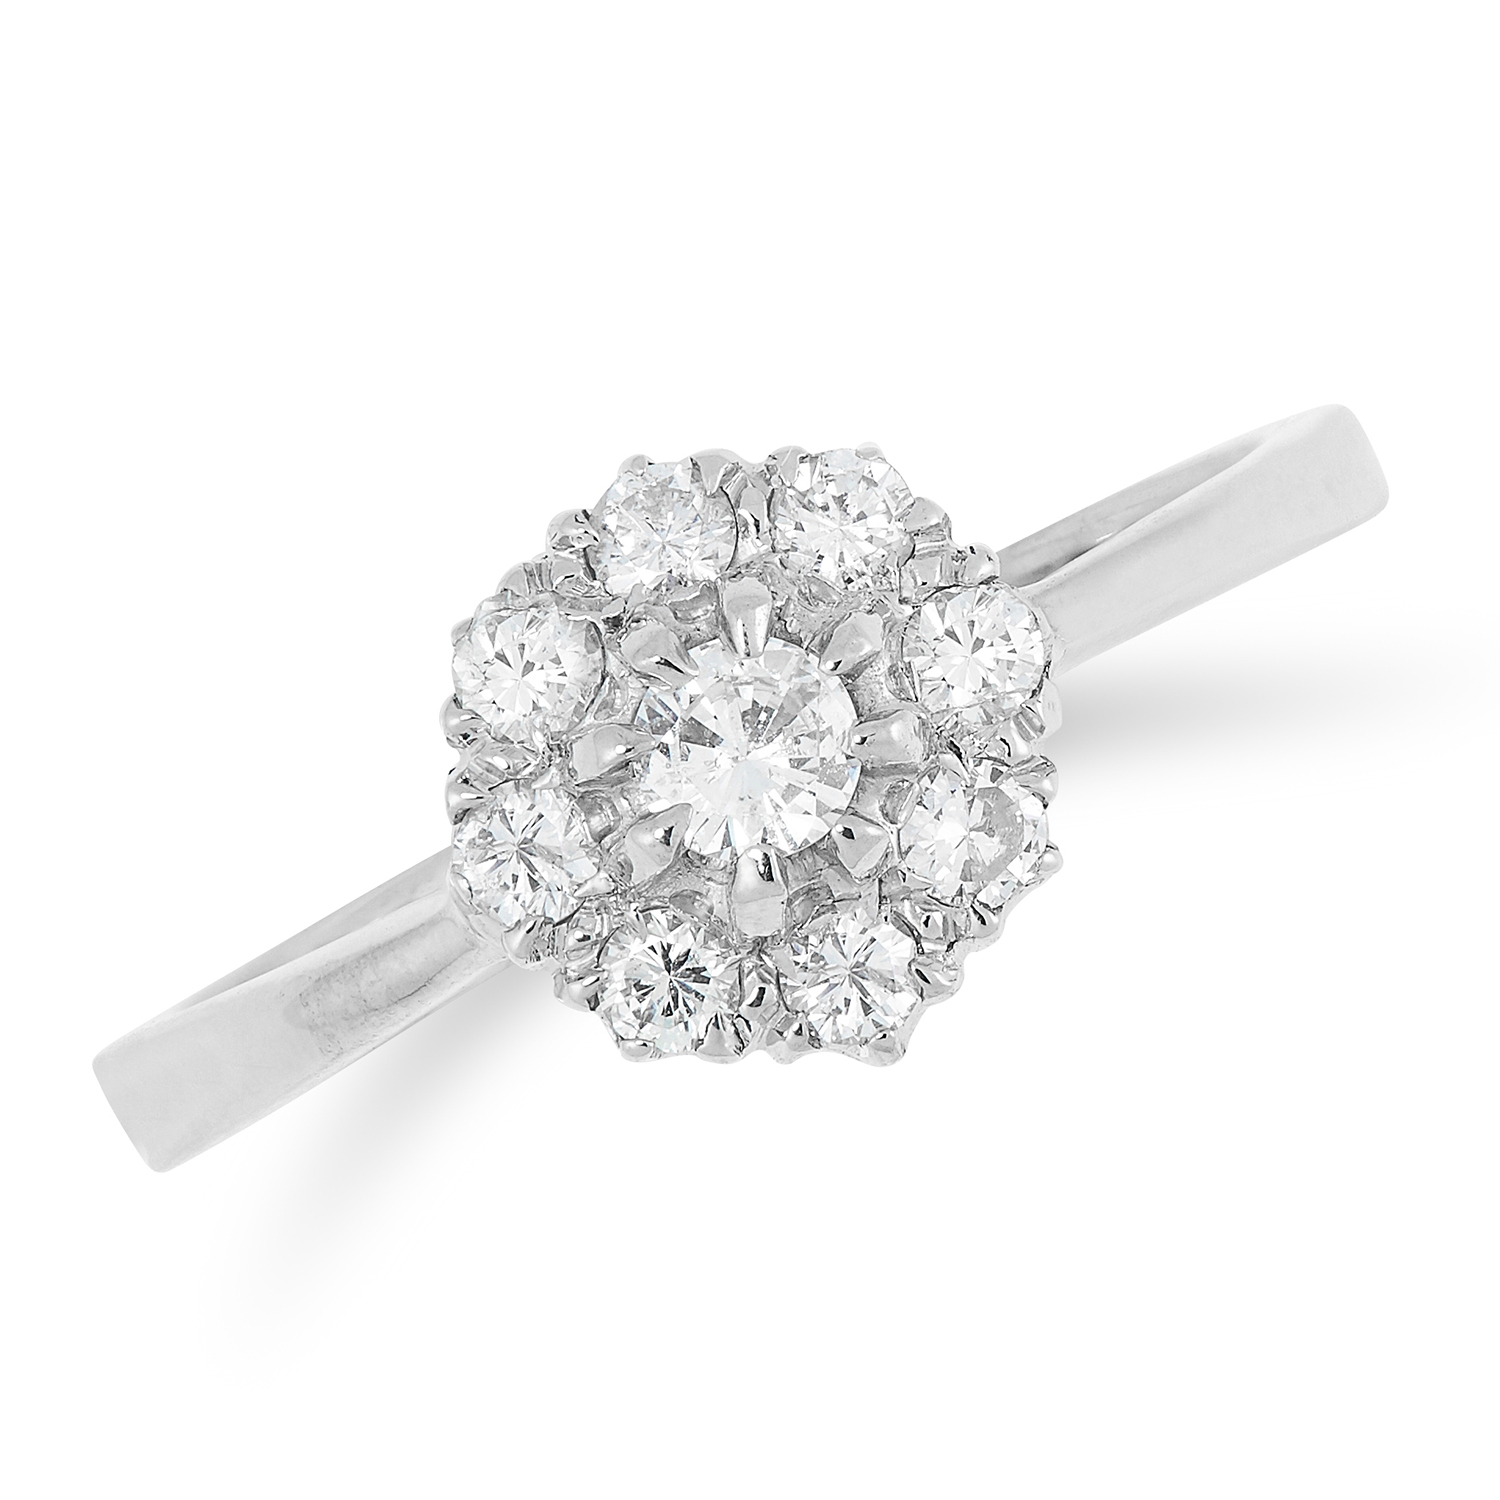 A DIAMOND CLUSTER RING set with a cluster of round cut diamonds, size N / 6.5, 2.9g.